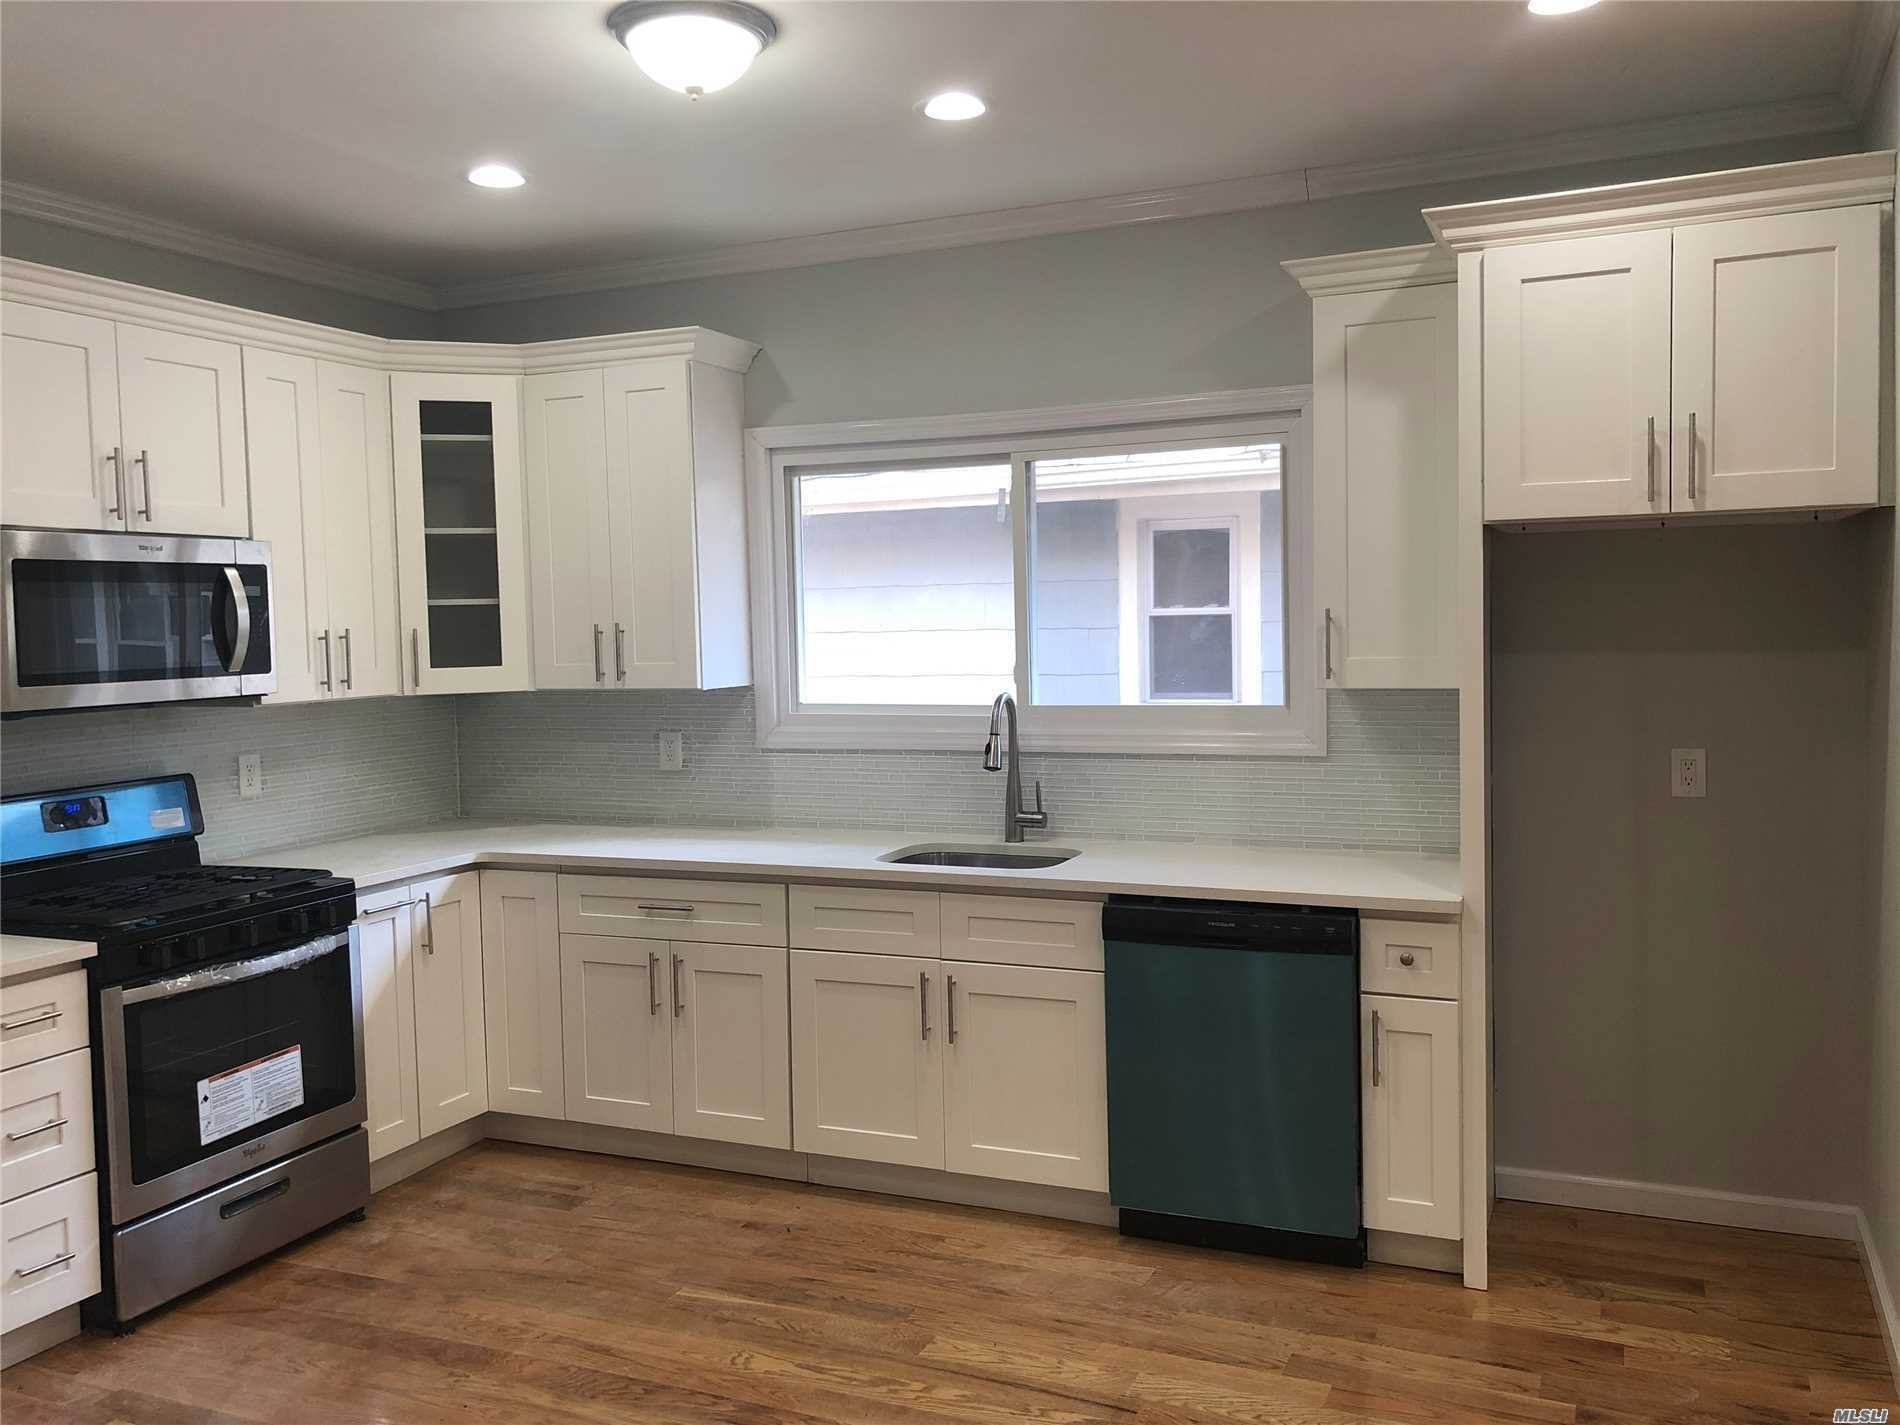 Fully Renovated Brick Home With Four Bedrooms & Four Full Bathrooms. Master Bedroom Has En-Suite Master Bath W/ Jacuzzi Tub. Large Modern Eat In Kitchen, High Ceilings, Huge Basement With Bath And Hookups, Tons Of Possibilities. Driveway And Garage, New Roof! Great Location, Convenient To Everything, Wont Last!